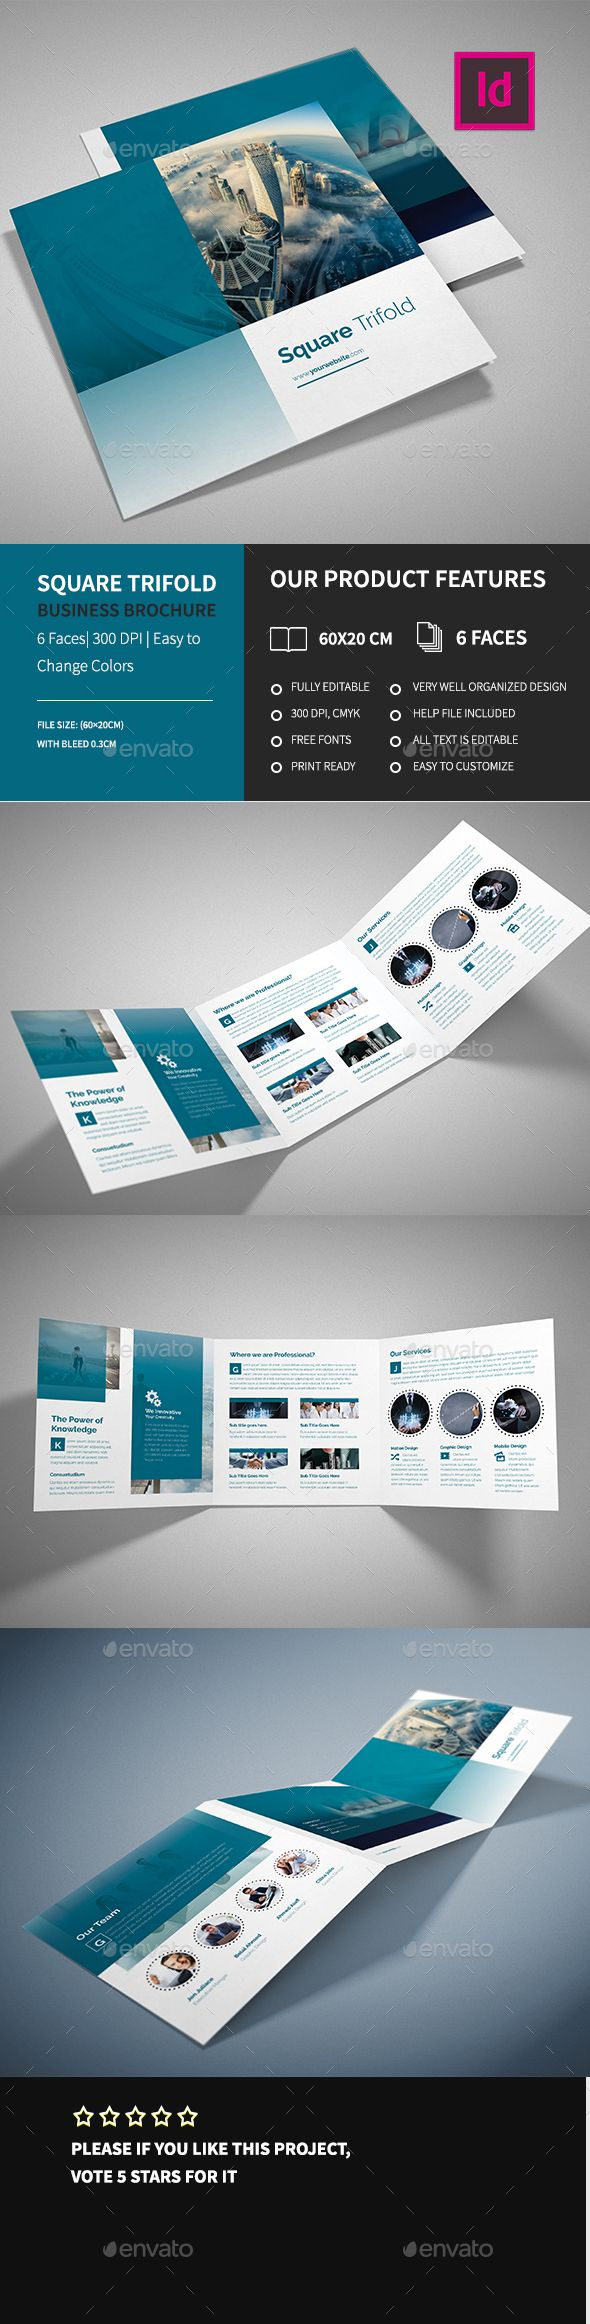 Corporate Square Trifold Business Brochure Template InDesign INDD ...